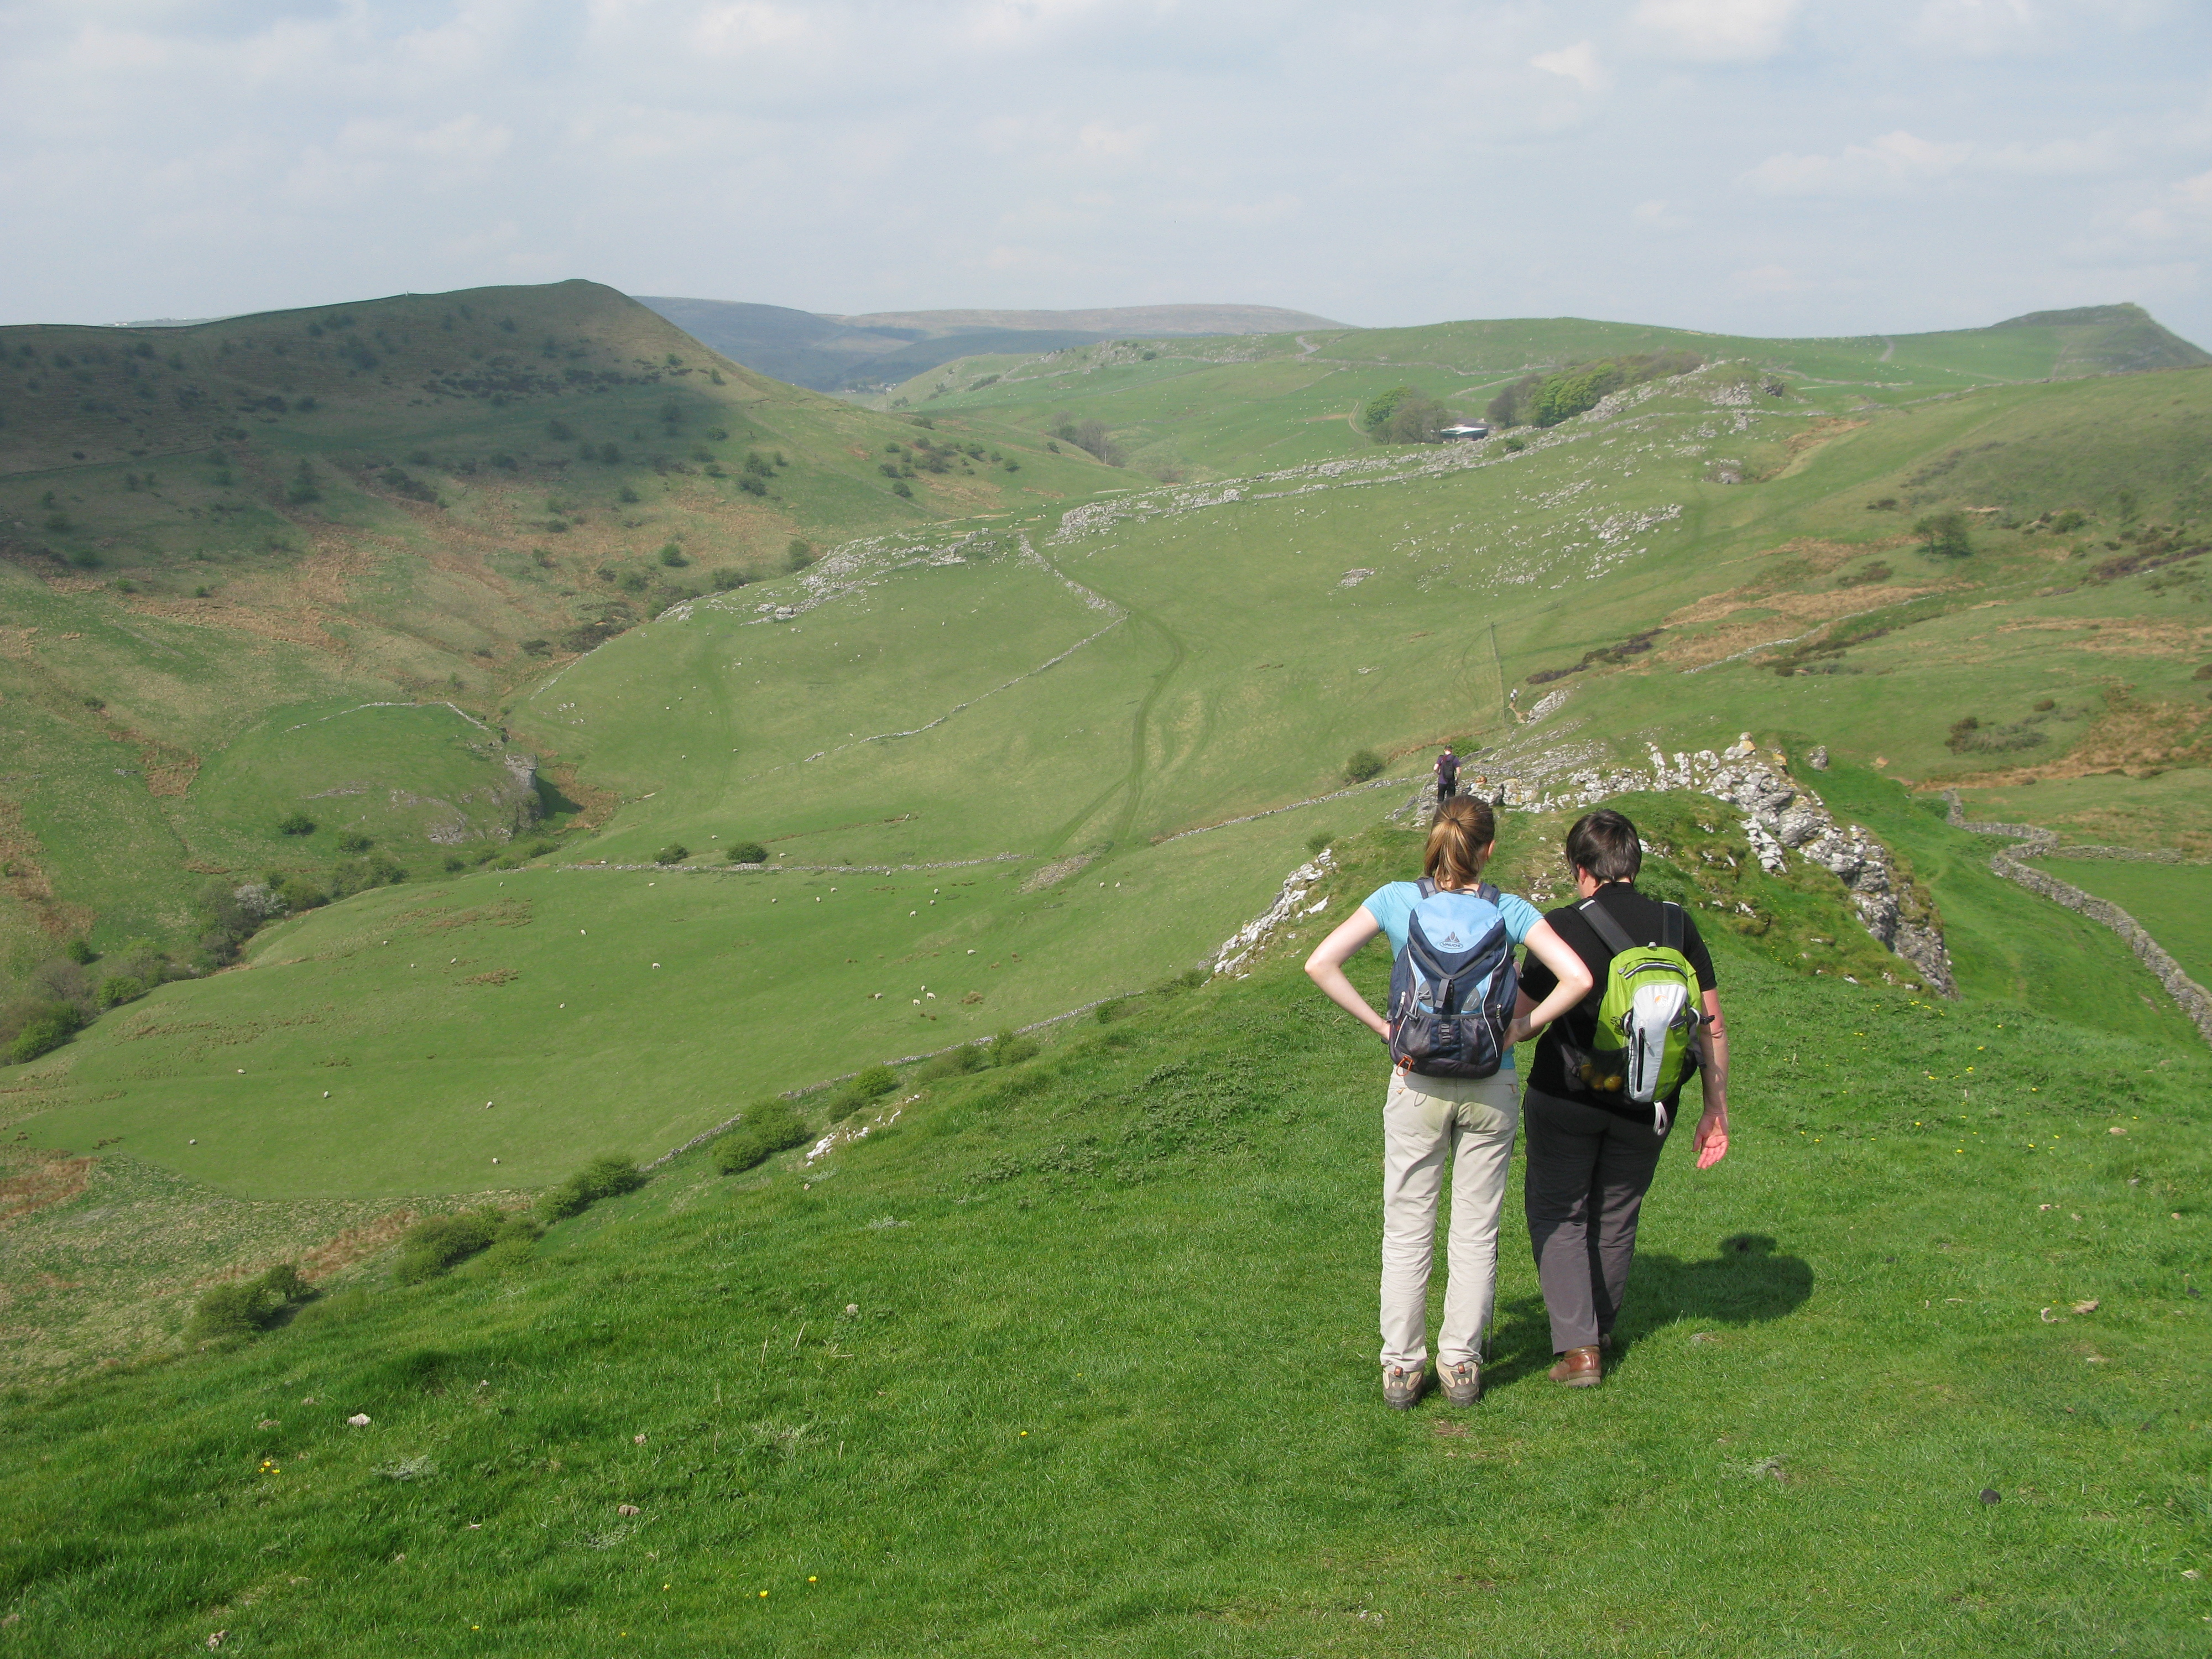 The White Peak has contrasting gentle rolling slopes, split by steep sided valleys. It is superb walking country